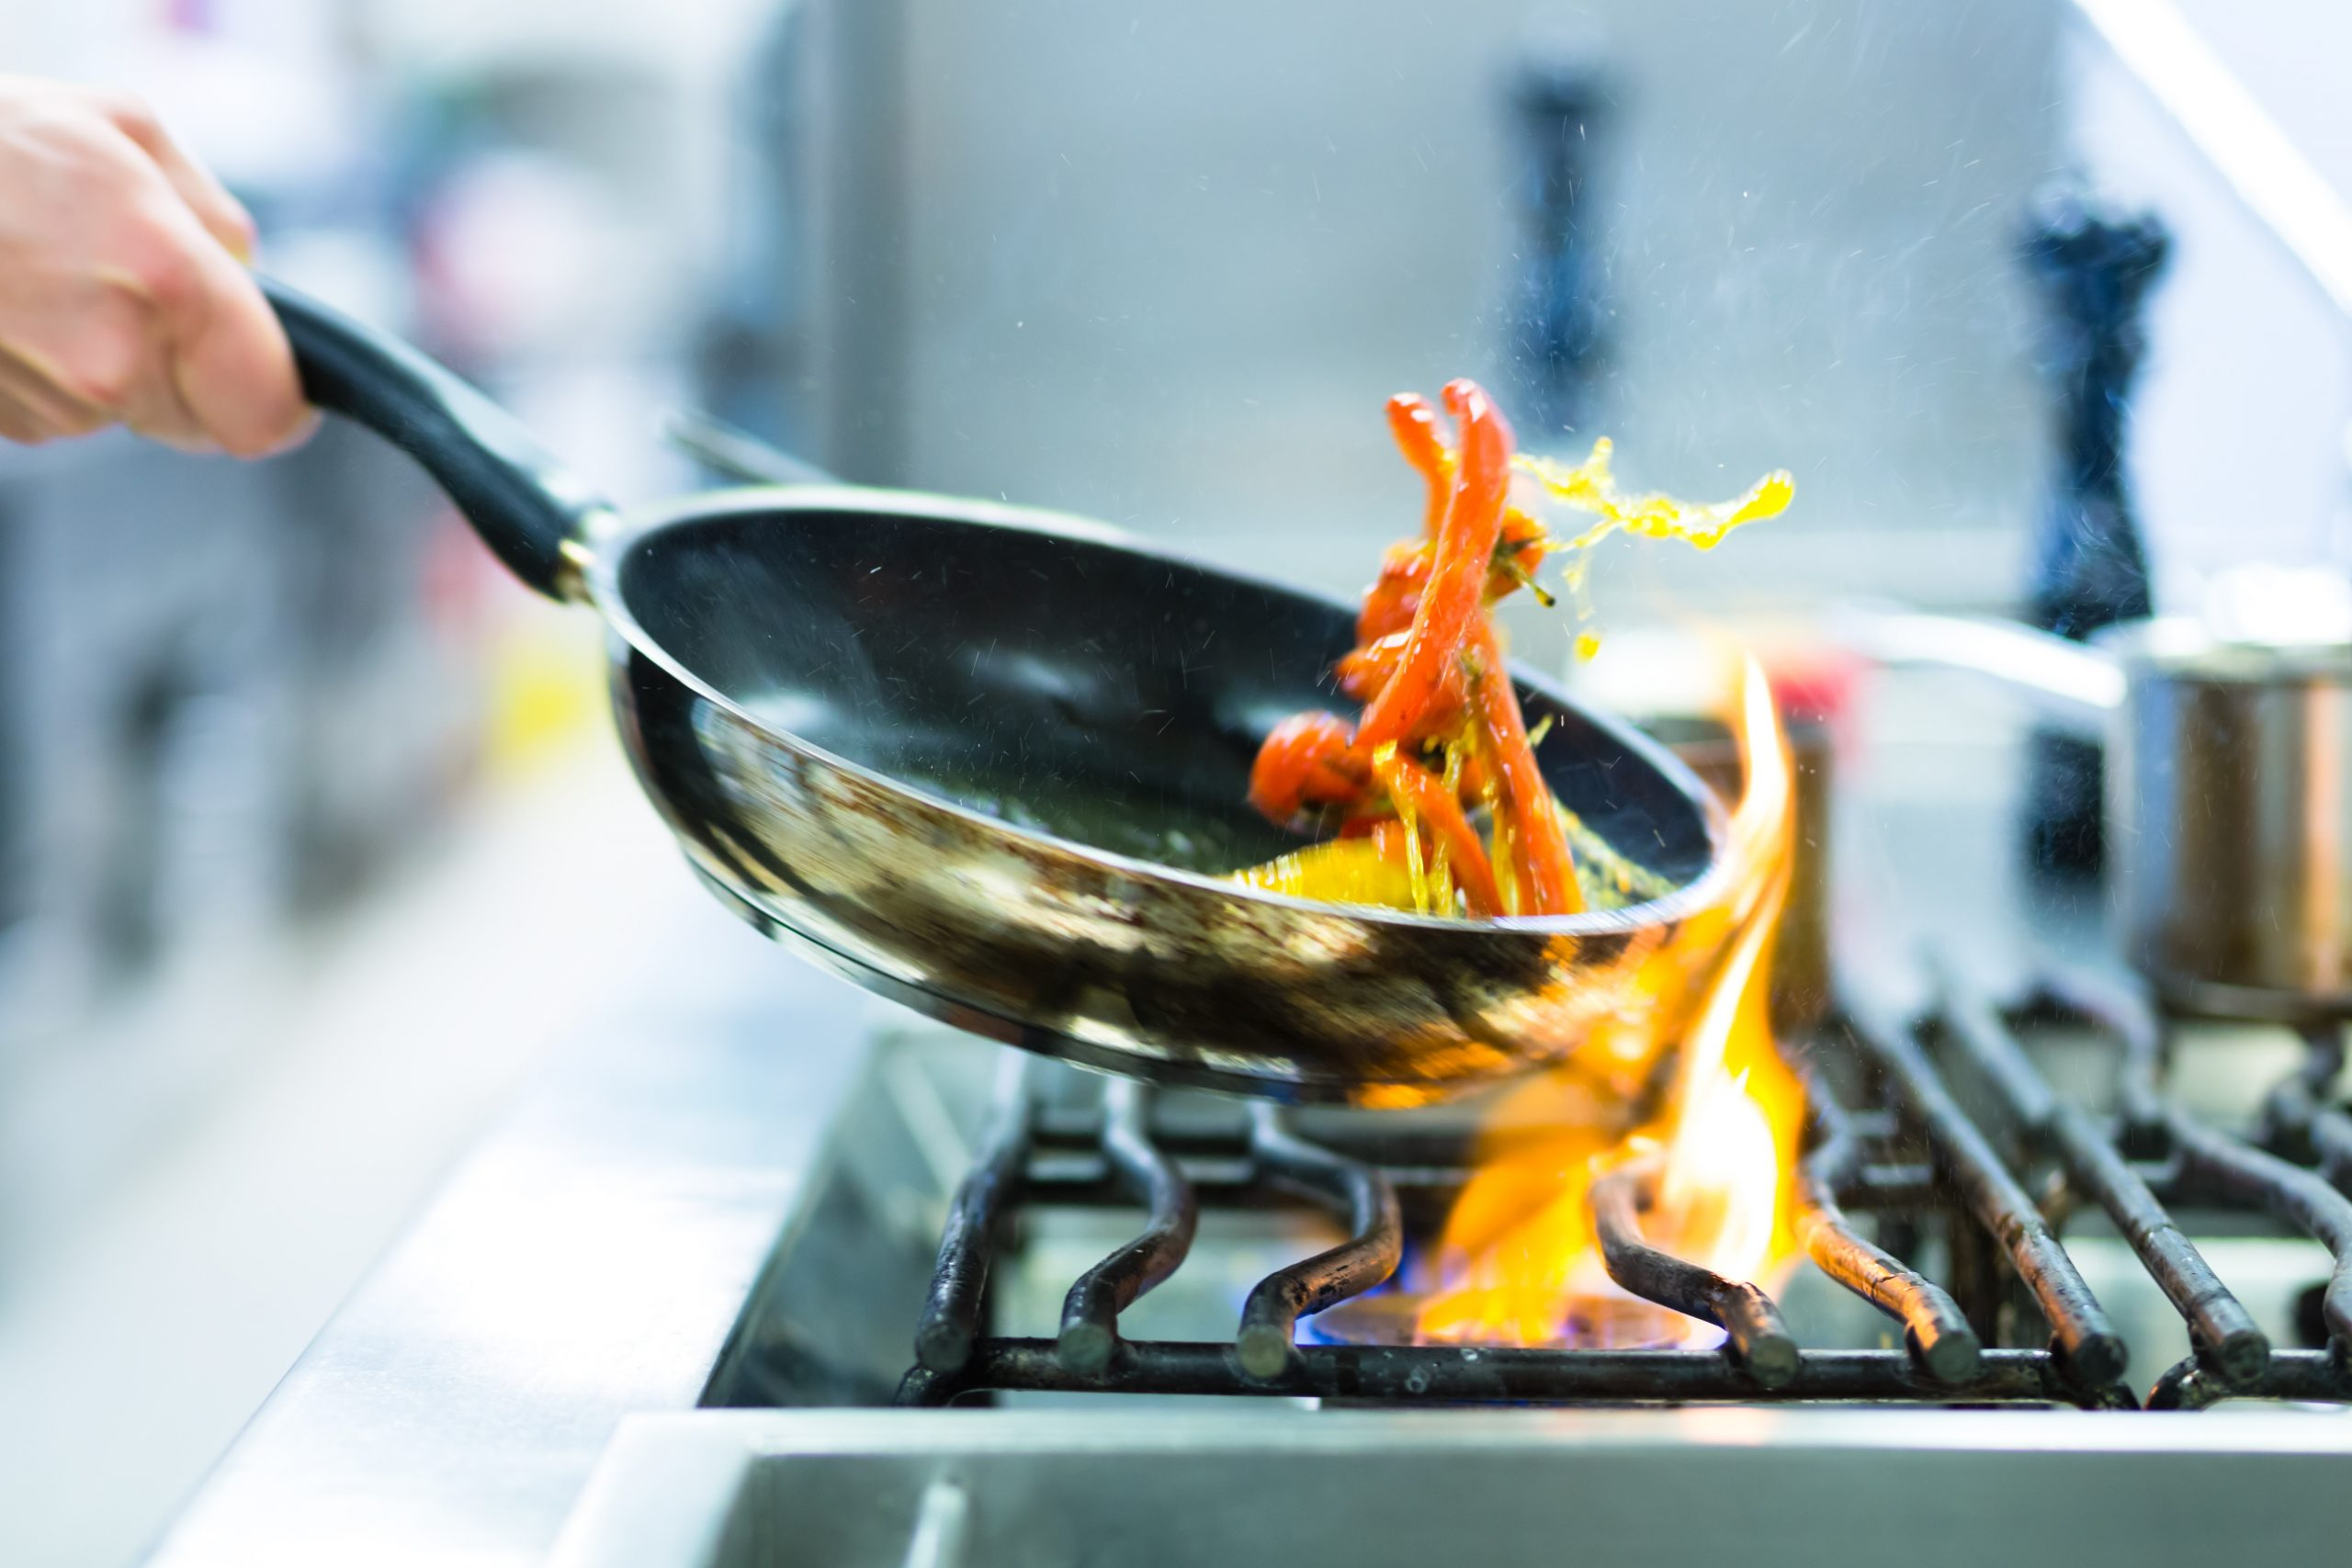 Cooking food over a stove flame